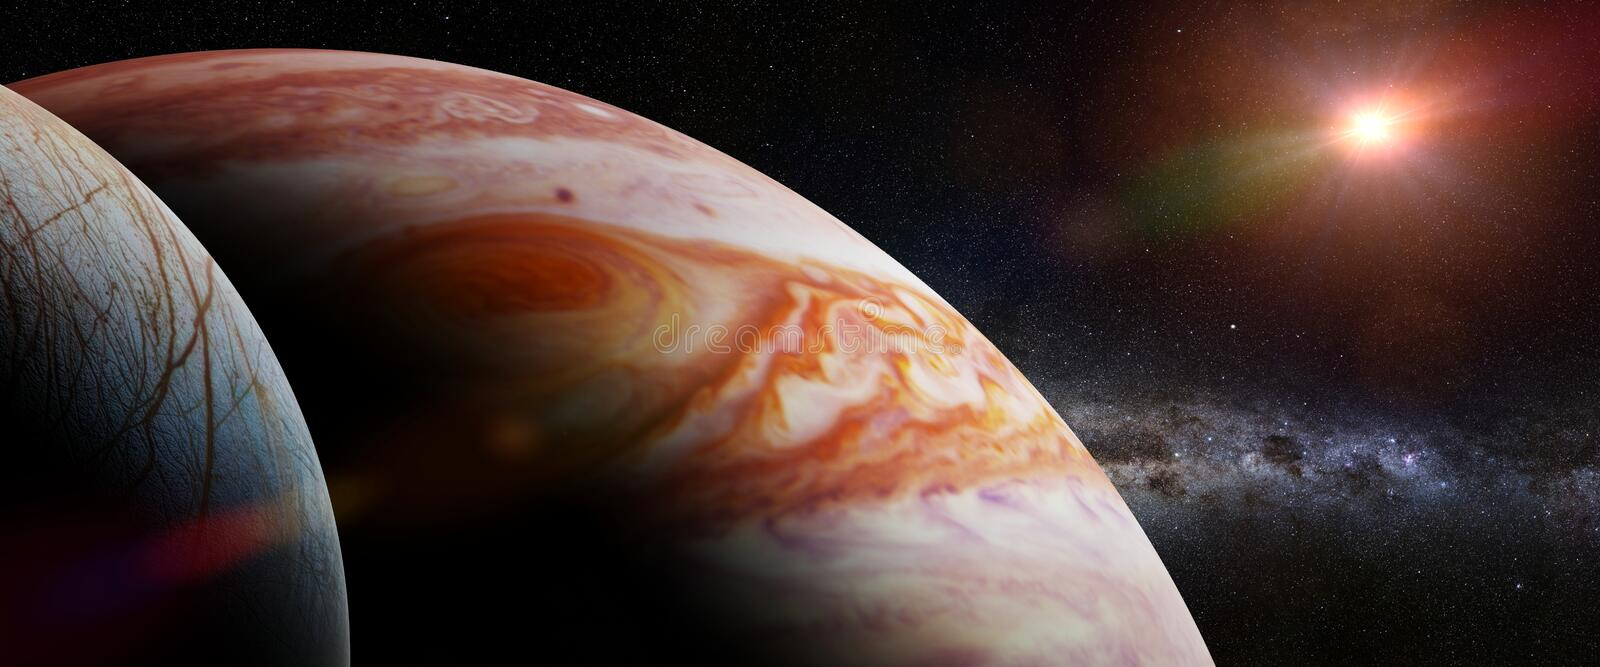 Jupiter`s moon Europa, the planet Jupiter, the Milky Way and the Sun 3d illustration banner, elements of this image are furnished stock illustration